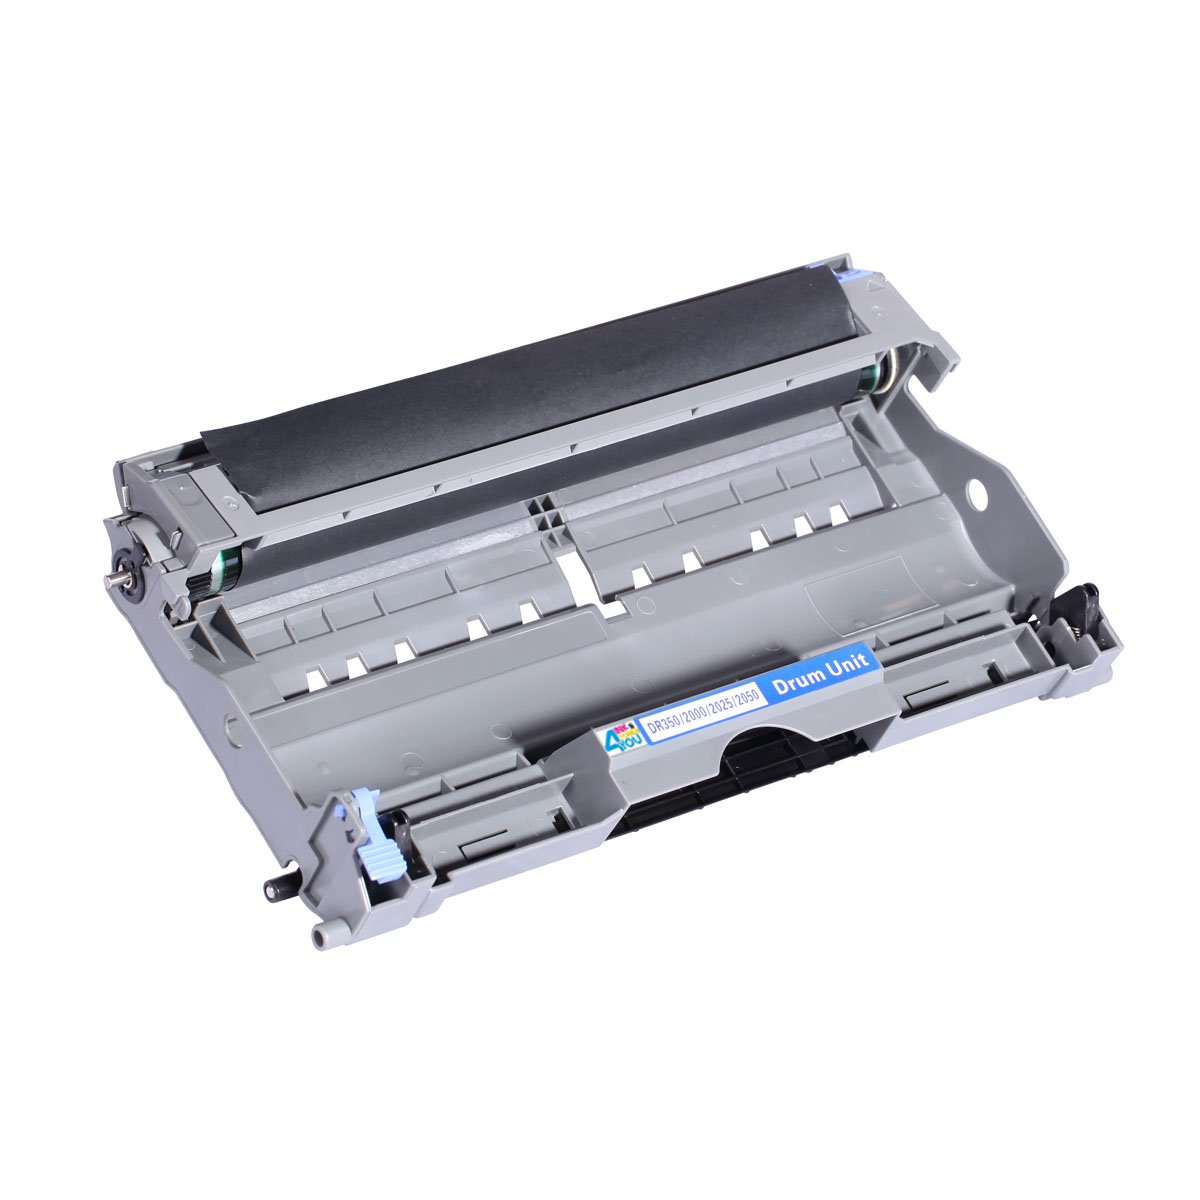 Ink & Toner 4 You ® Compatible Drum Unit for Brother DR-350 Works With  Brother DCP-7010 DCP-7020 DCP-7025 HL-2030 HL-2030R HL-2040 HL-2040N  HL-2040R ...